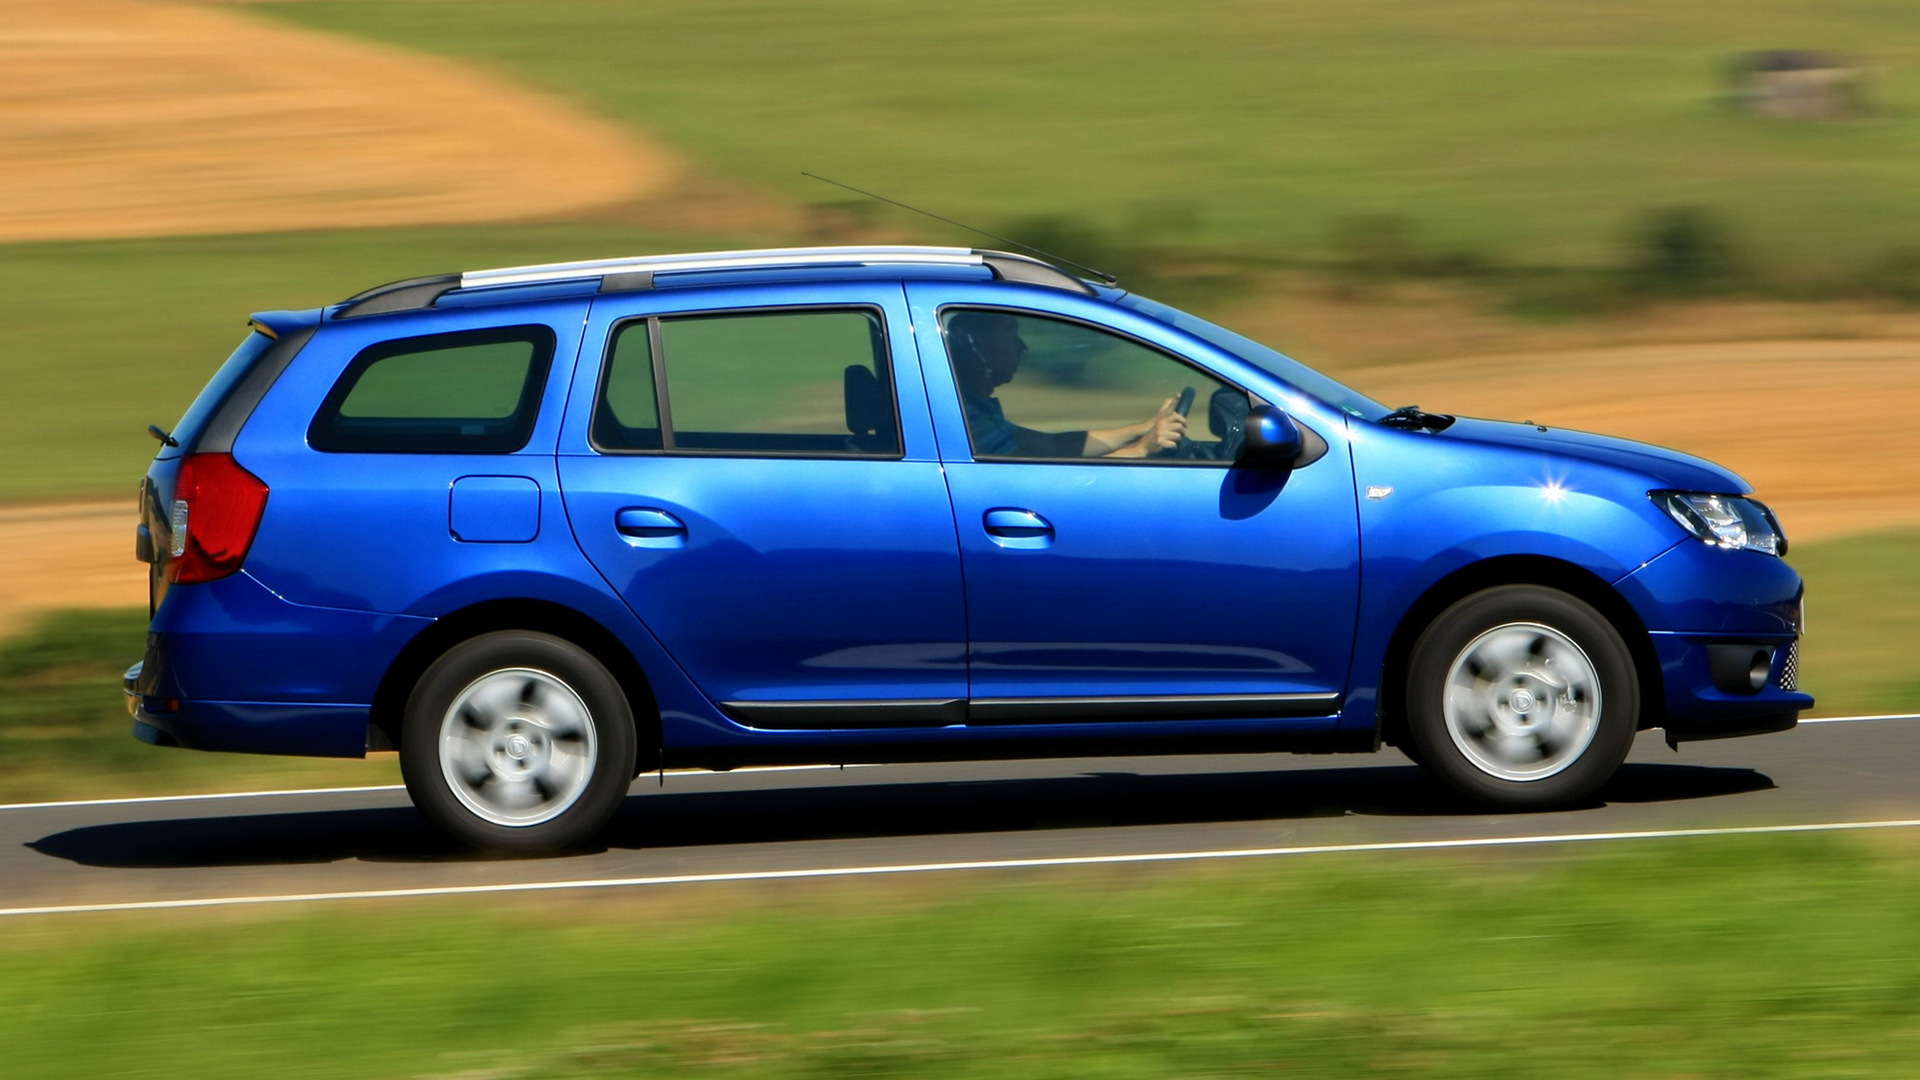 dacia logan mcv 2013 wallpapers and hd images car pixel. Black Bedroom Furniture Sets. Home Design Ideas